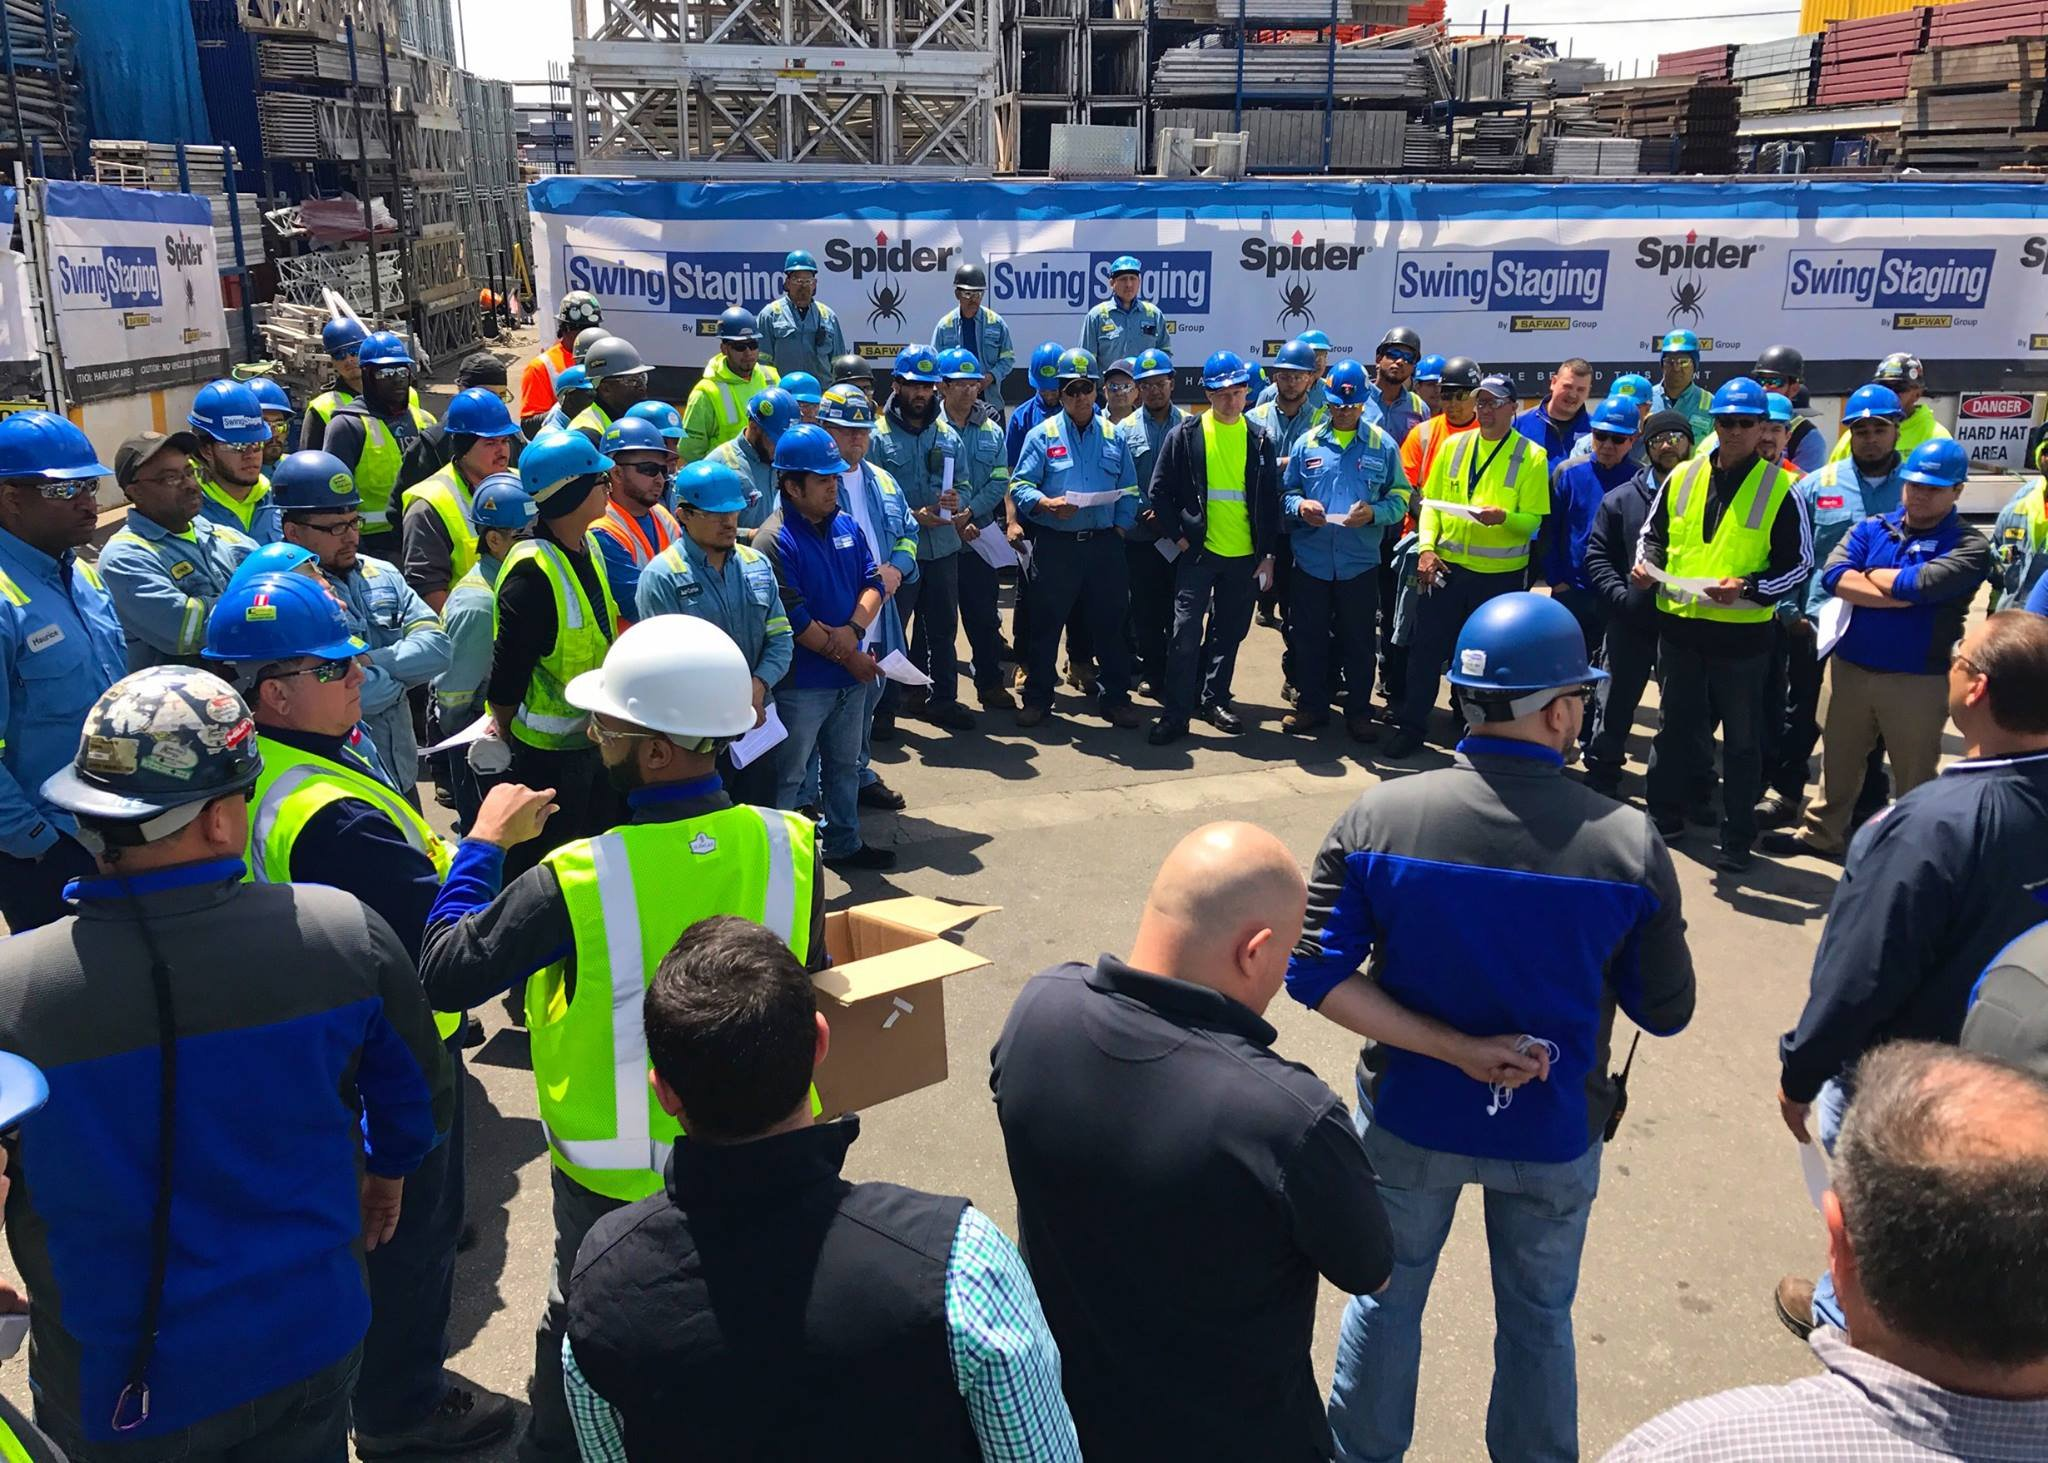 Re-energizing our commitment to workplace and jobsite safety in New York. #StandDown4Safety https://t.co/TfK4CEqADq